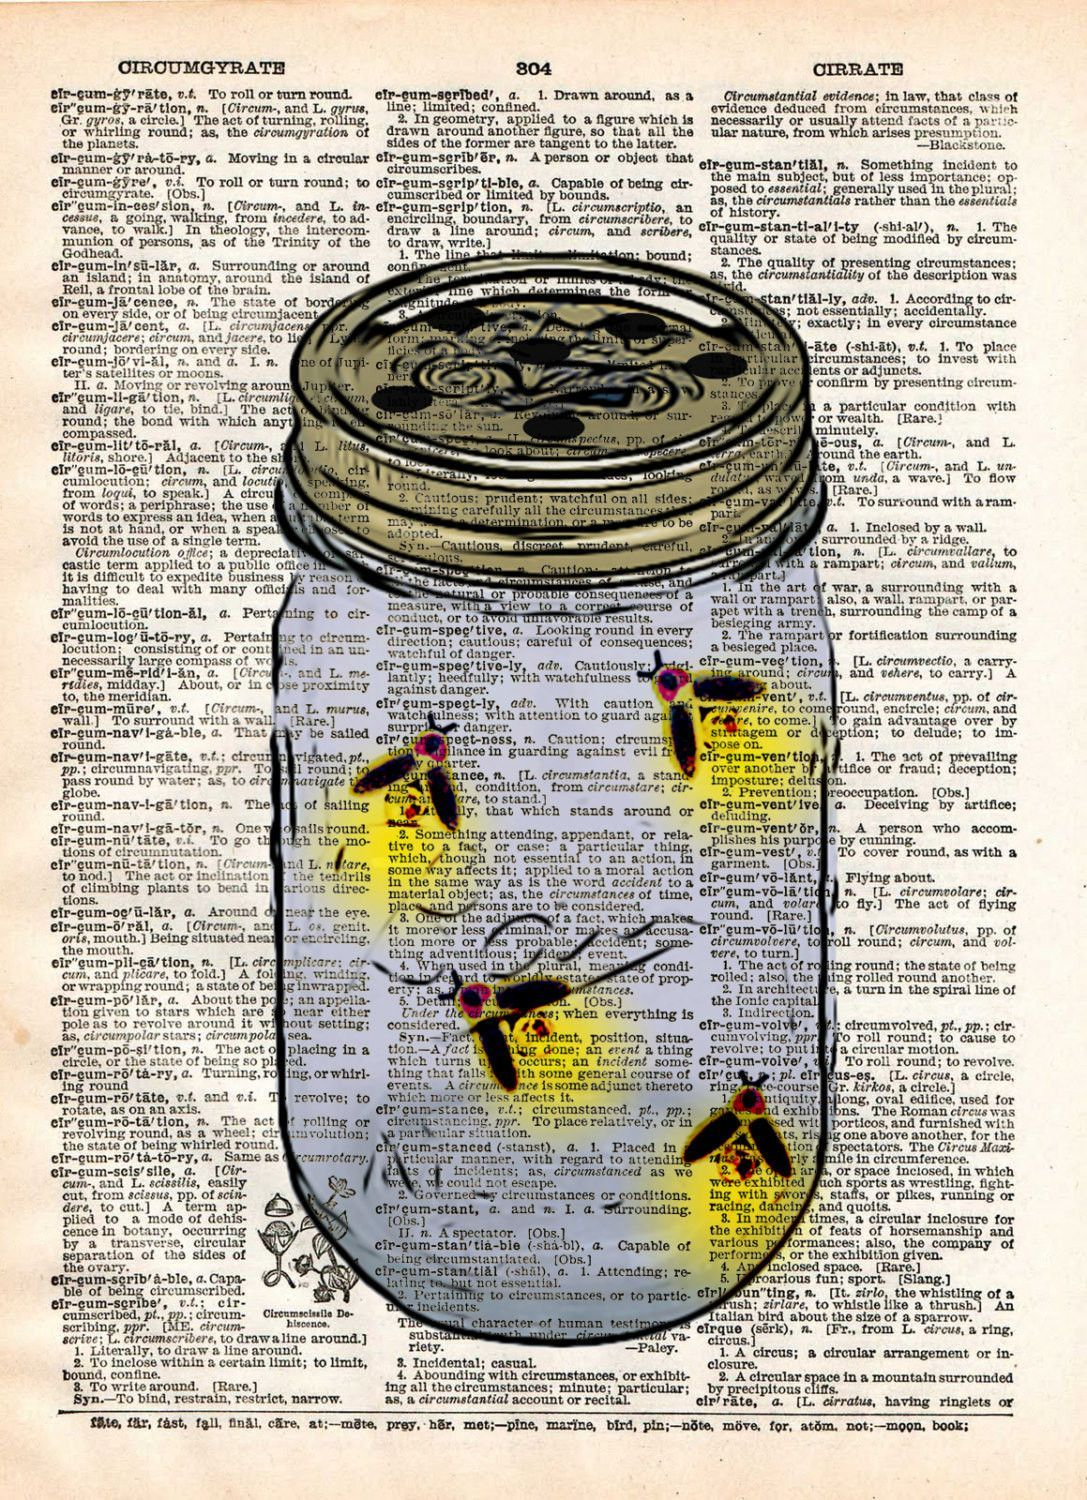 Firefly Jar Art Firefly Art Mason Jar Artfireflies In Mason Jar Childrens Art